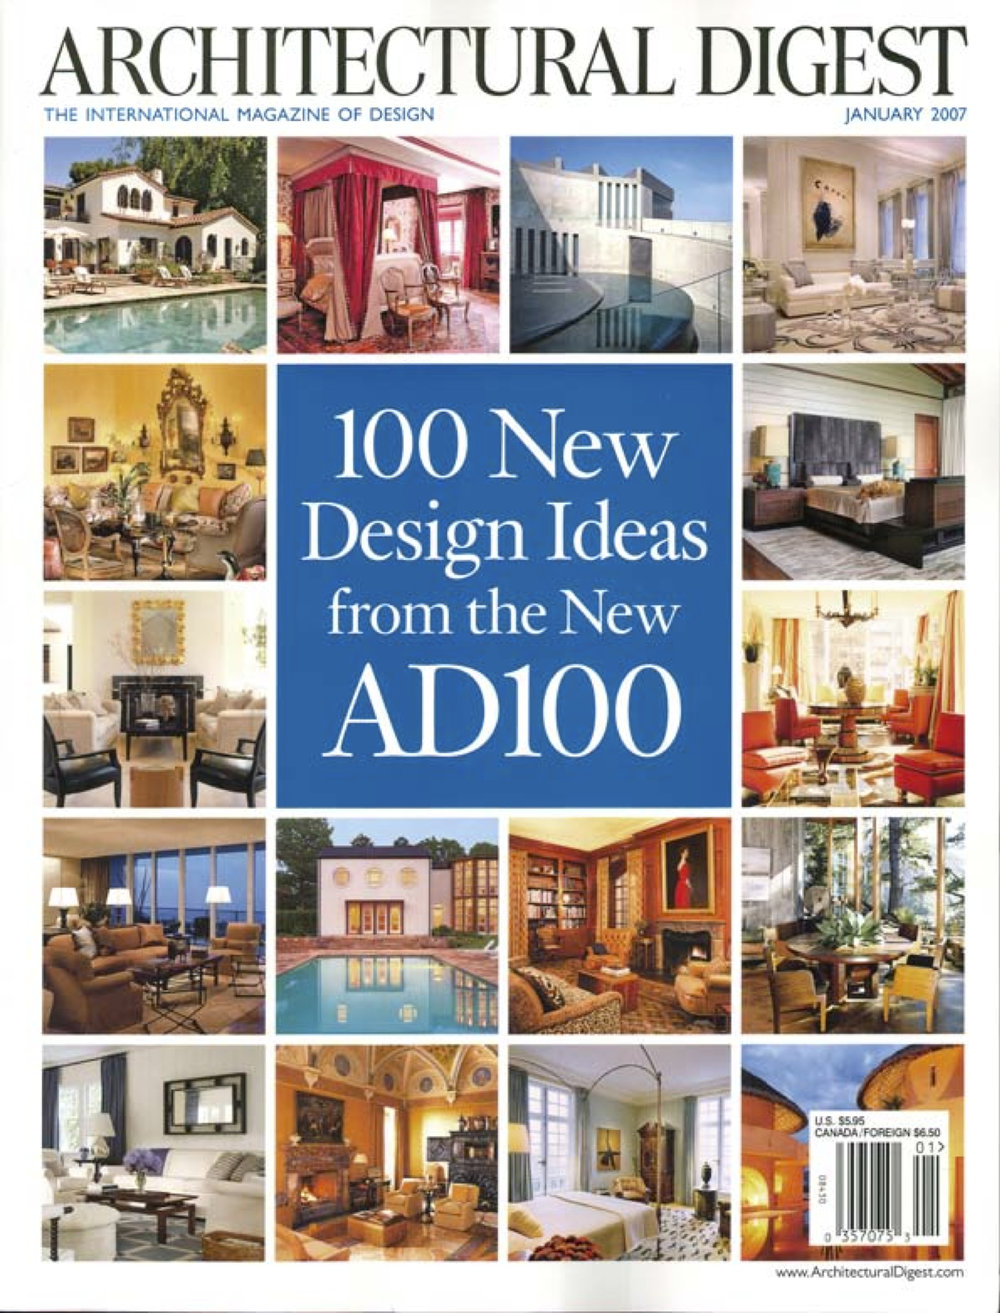 Architectural digest | ad100 jacques saint d